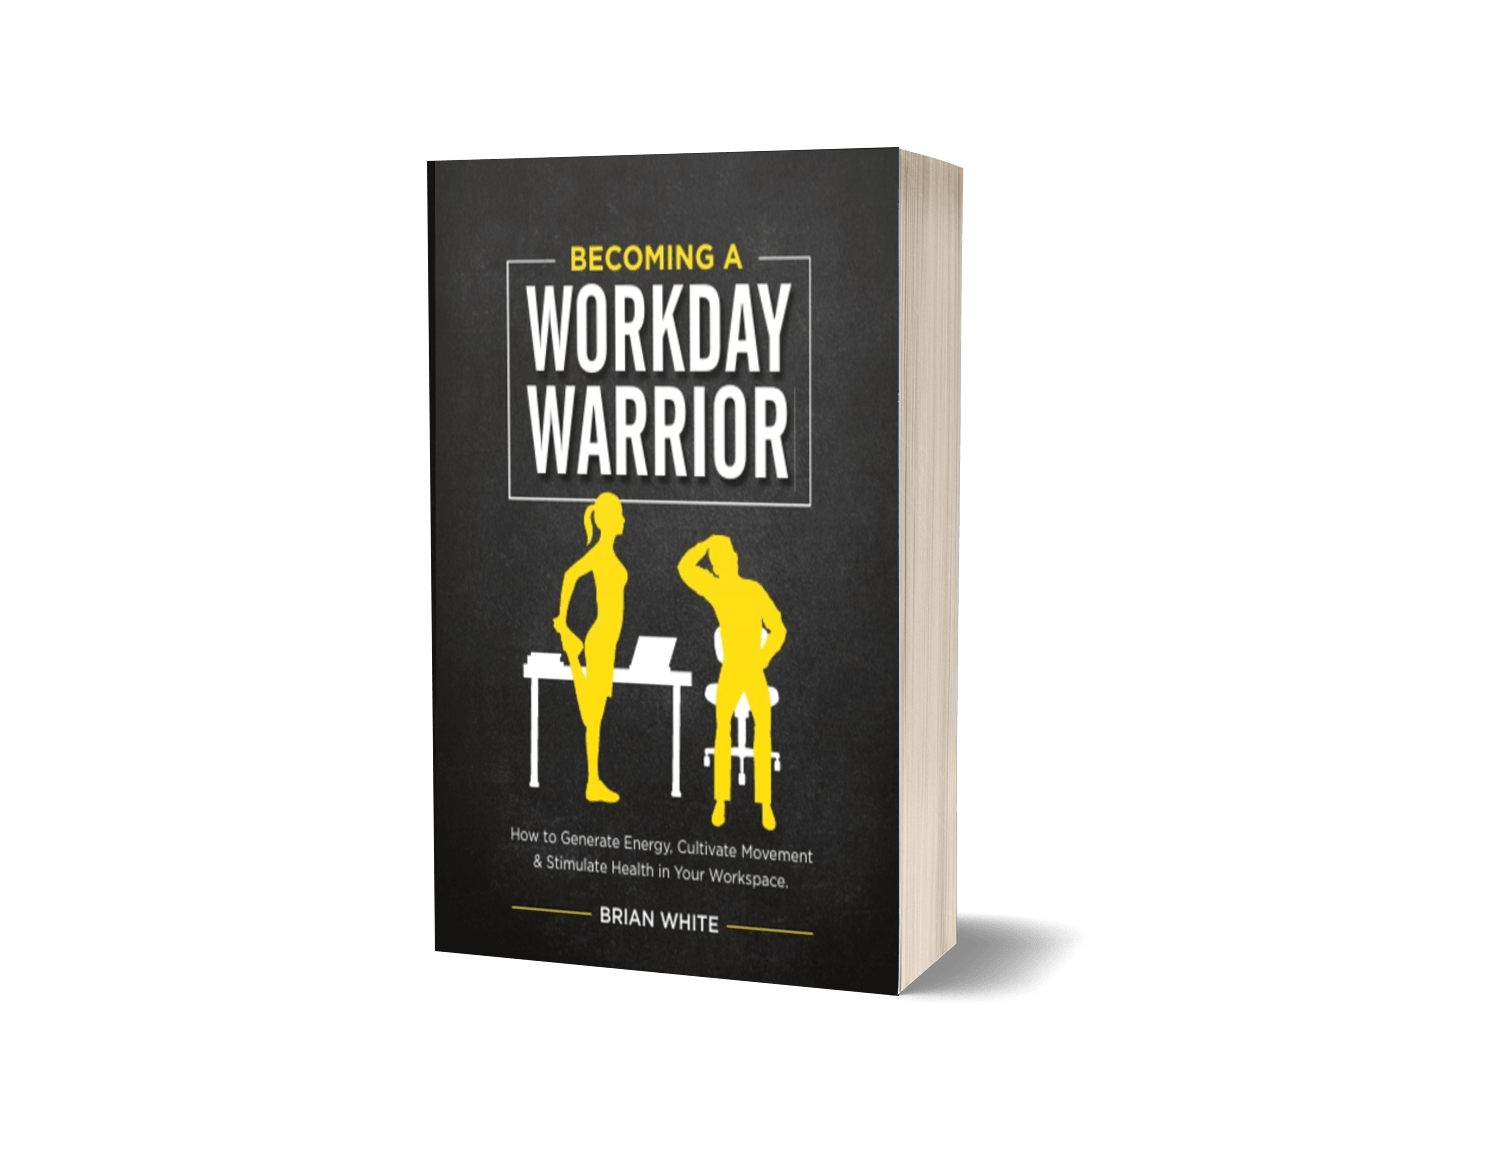 Becoming A Workday Warrior